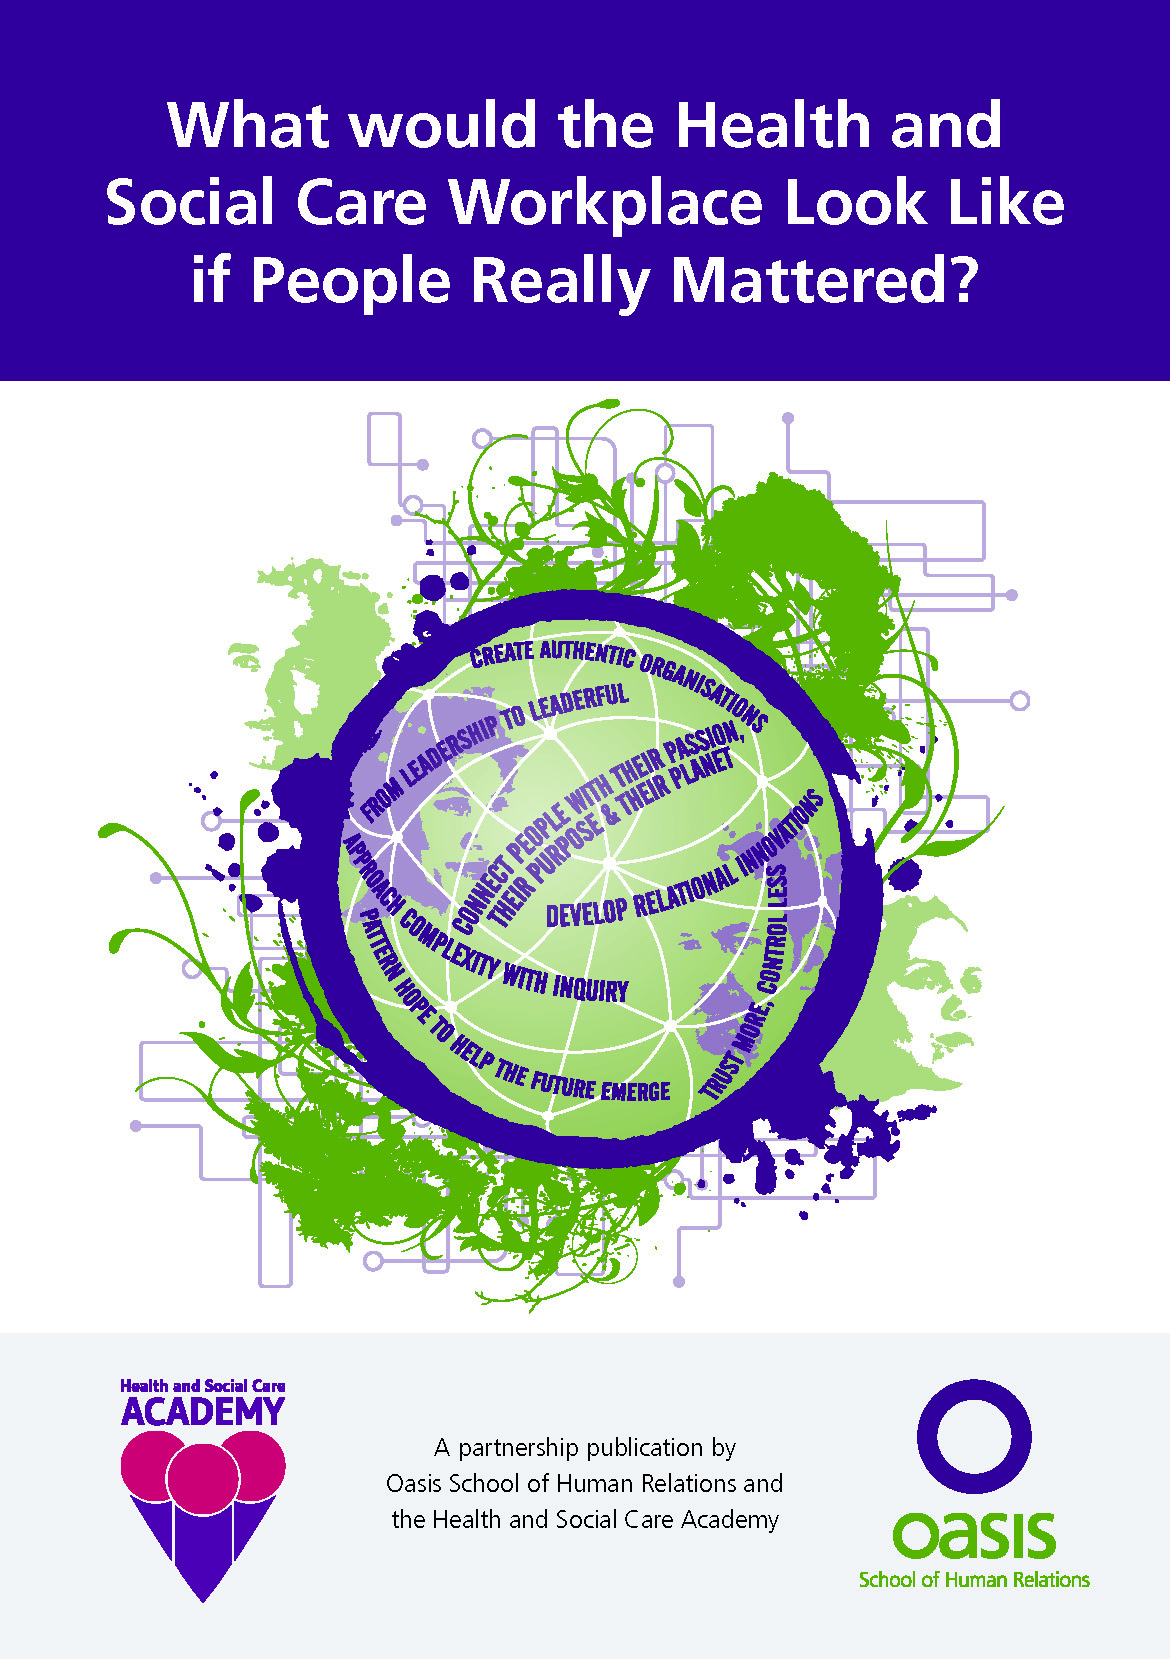 What would the Health and Social Care Workplace Look Like if People Really Mattered?